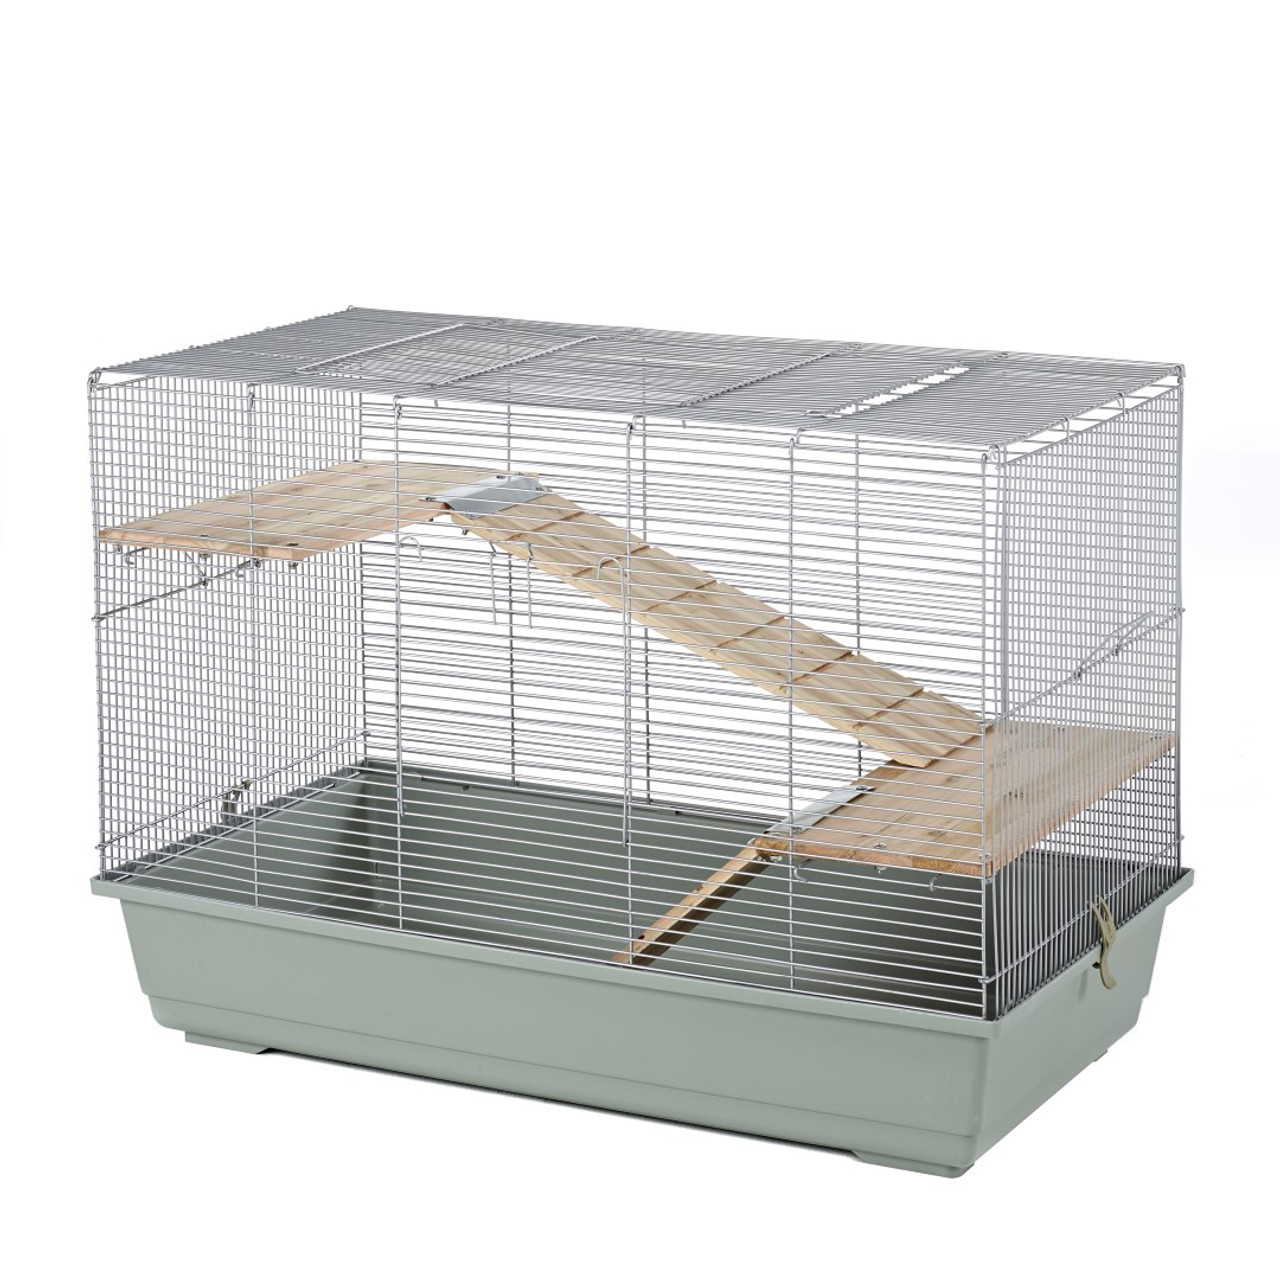 Coco Rat  Hamster Cage With Platforms Large 100X70X54Cm -5731